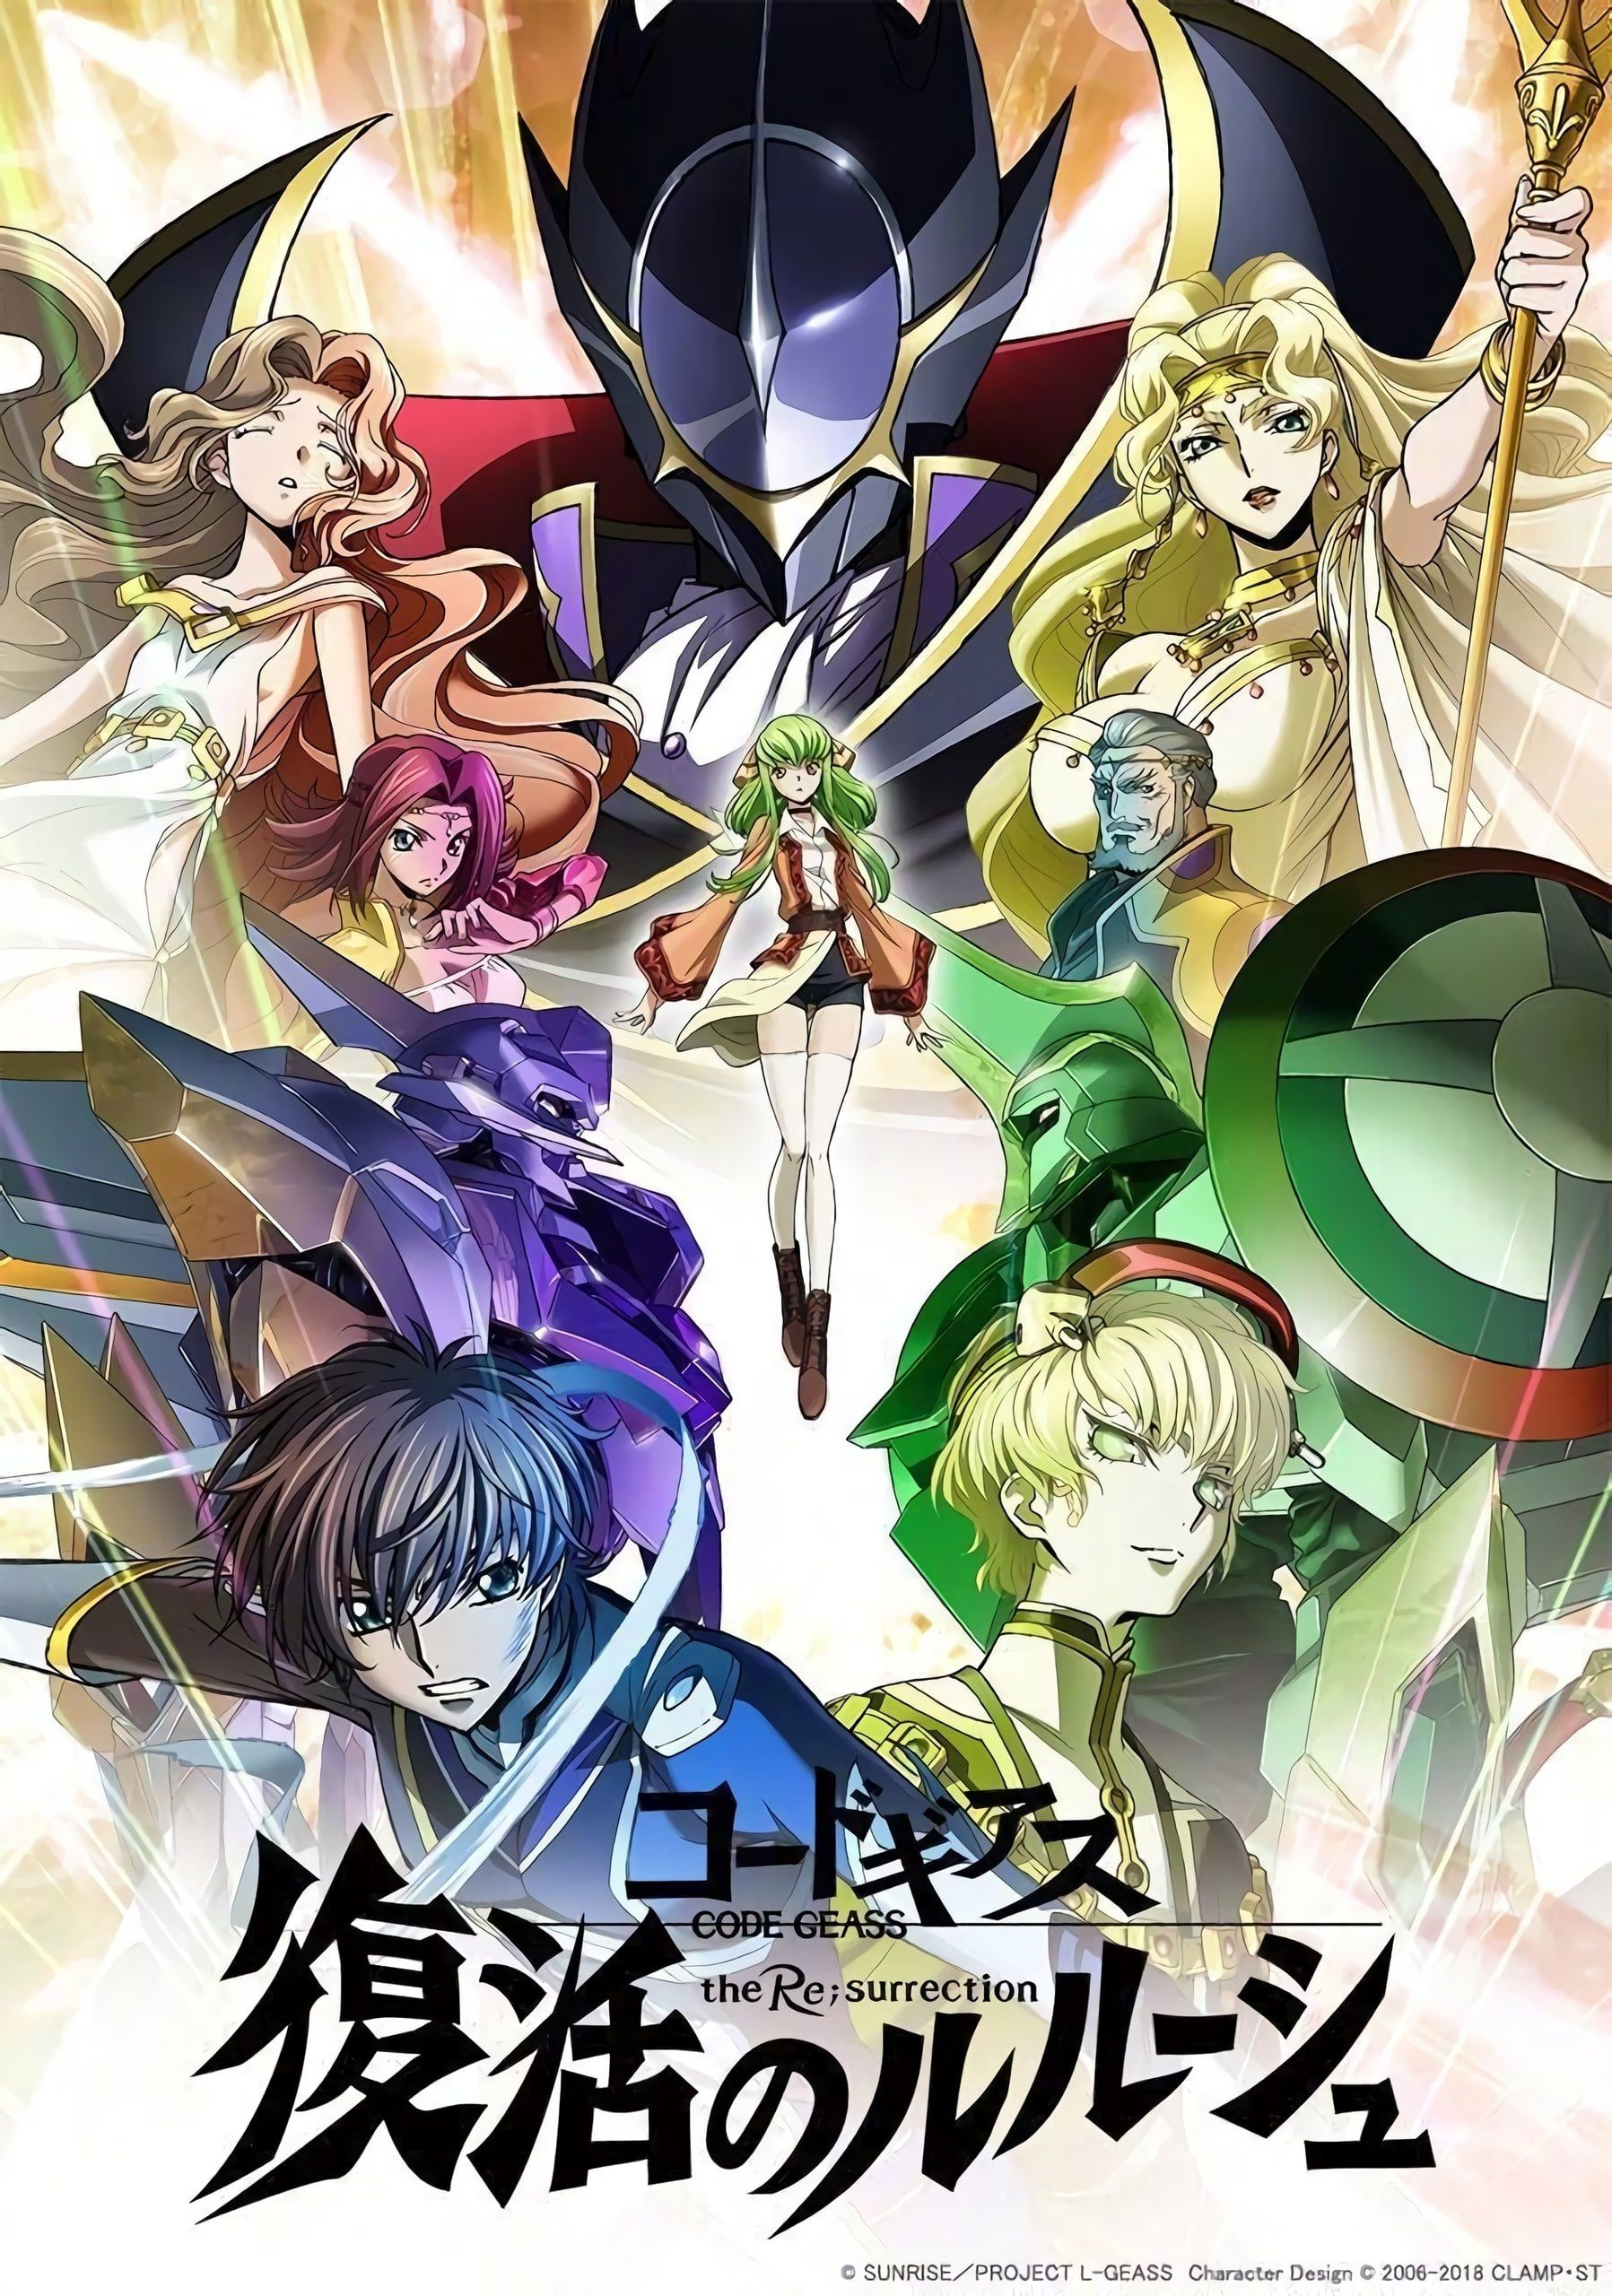 Assistir Filme Completo Code Geass Lelouch Of The Re Surrection